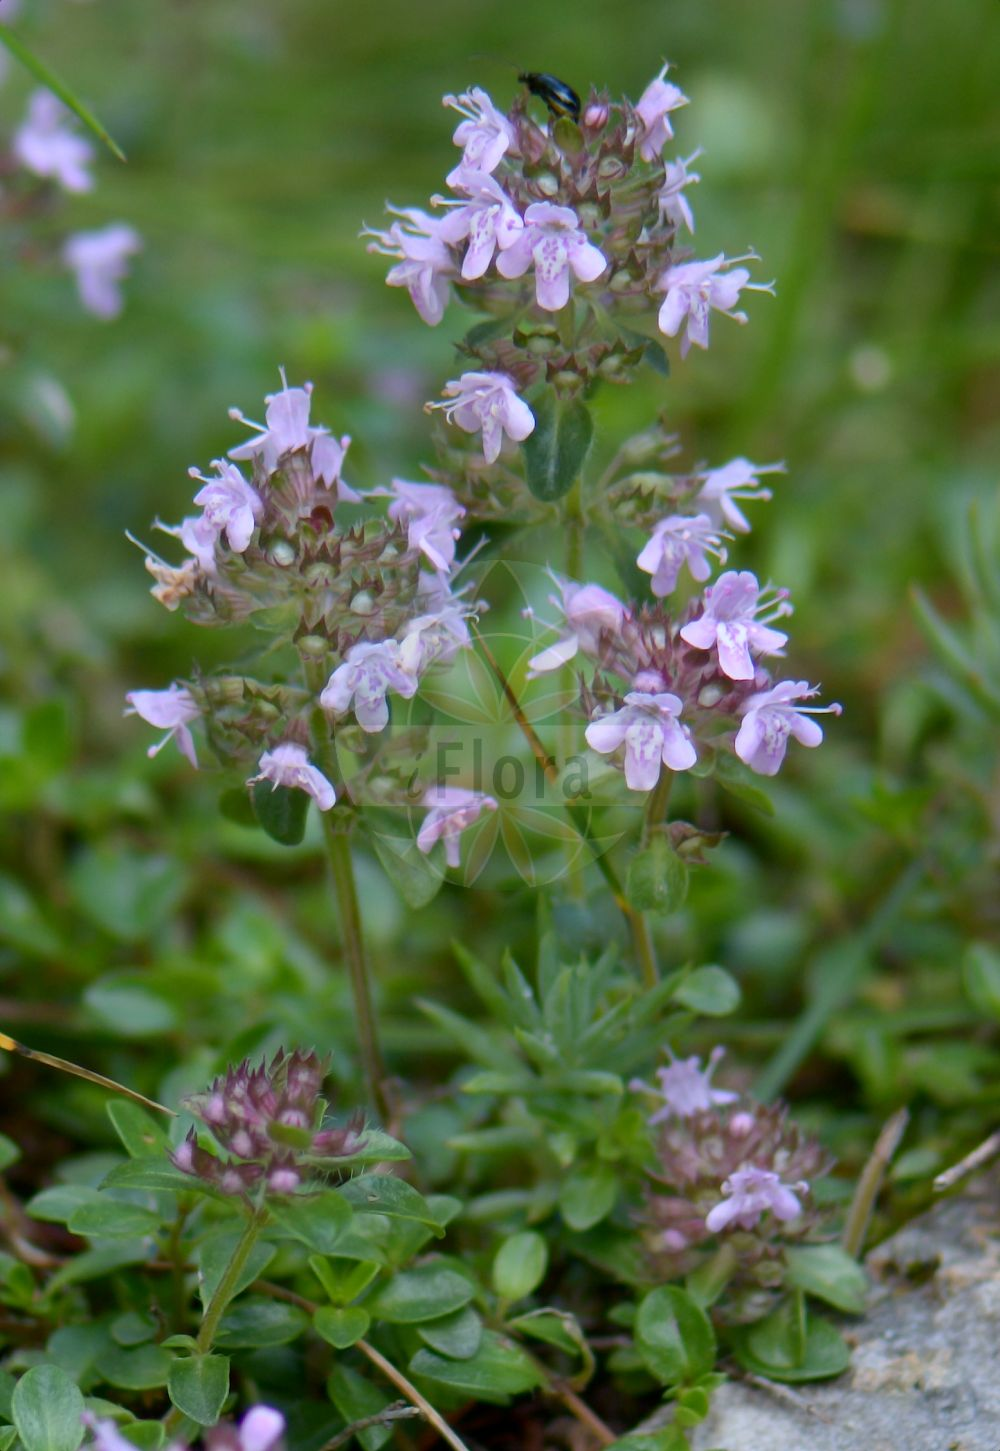 Foto von Thymus alpestris (Hochgebirgs-Thymian - Wild Thyme). Das Foto wurde in Monte Baldo, Ferrara di Monte Baldo, Veneto, Italien, Alpen aufgenommen. ---- Photo of Thymus alpestris (Hochgebirgs-Thymian - Wild Thyme).The picture was taken in Monte Baldo, Ferrara di Monte Baldo, Veneto, Italy, Alps.(Thymus alpestris,Hochgebirgs-Thymian,Wild Thyme,Thymus subalpestris,Alpine Thyme,Thymus,Thymian,Thyme,Lamiaceae,Lippenbluetengewaechse;Lippenbluetler,Nettle family)